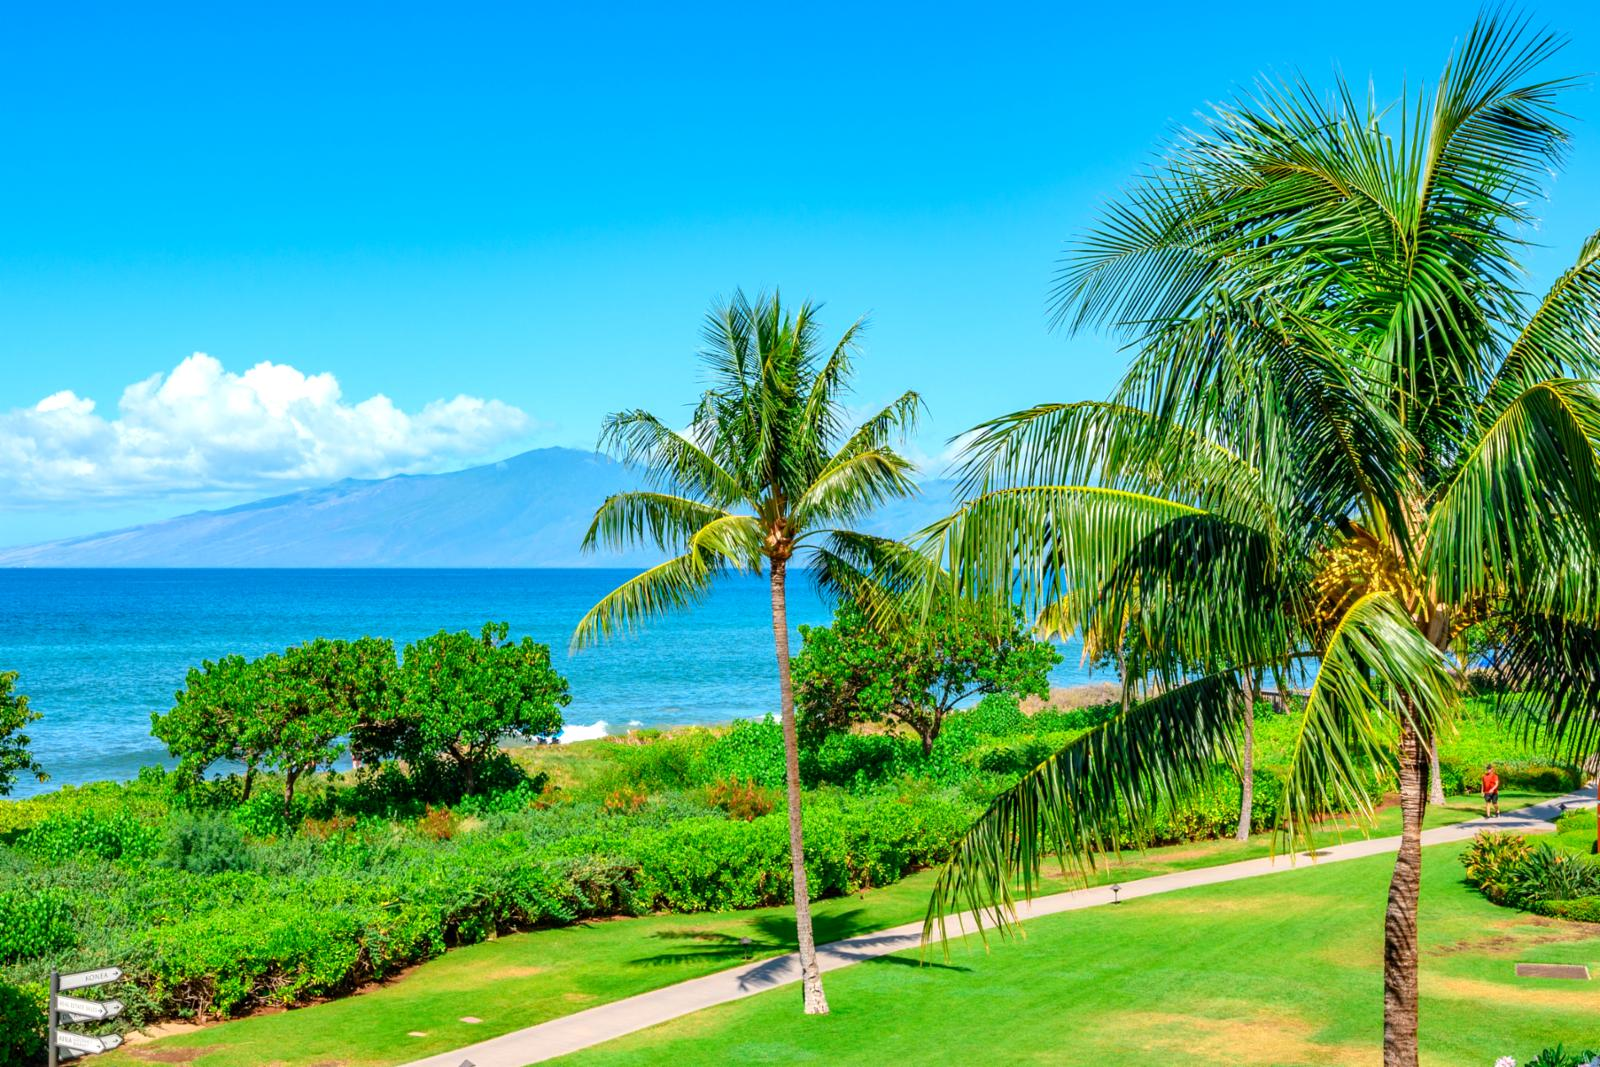 Stunning ocean and island views right from your balcony!